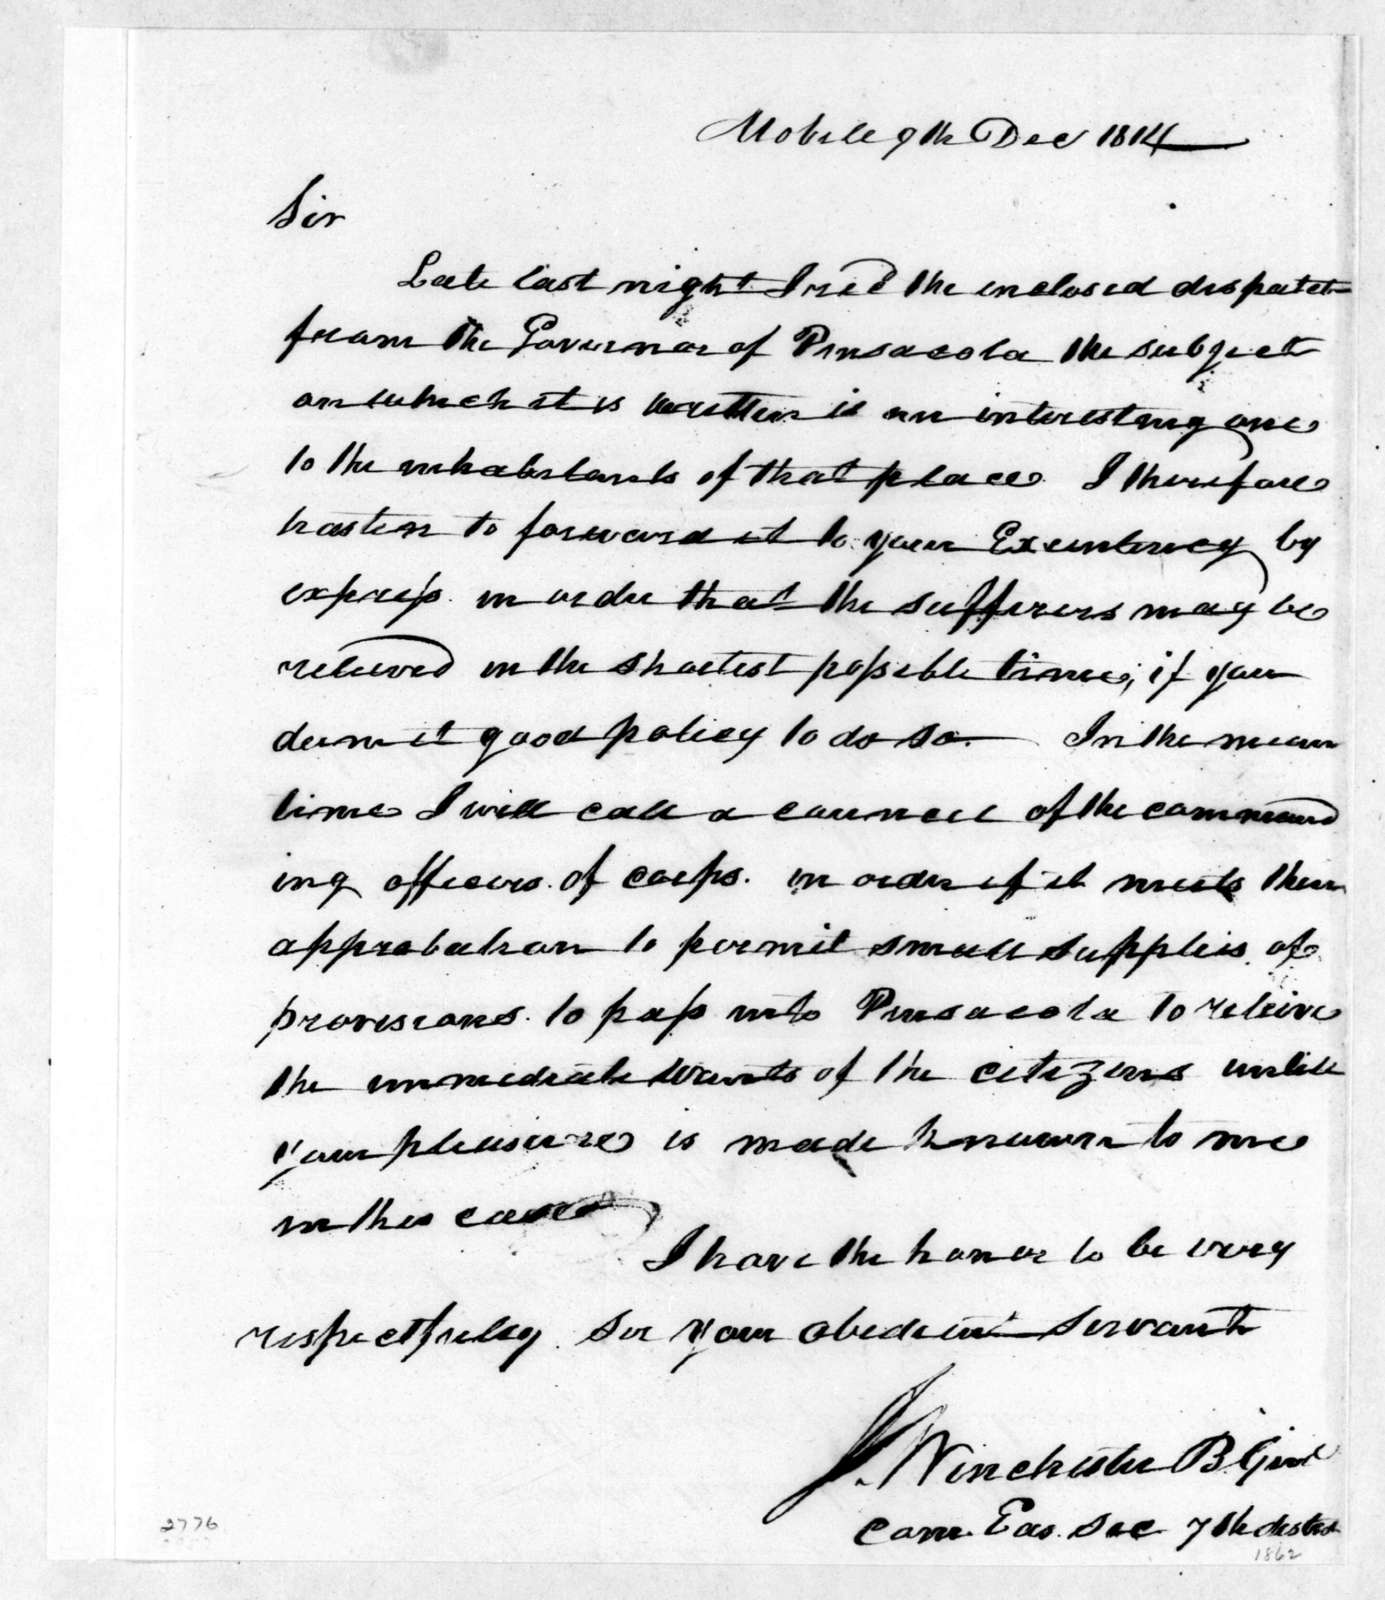 James Winchester to Andrew Jackson, December 9, 1814